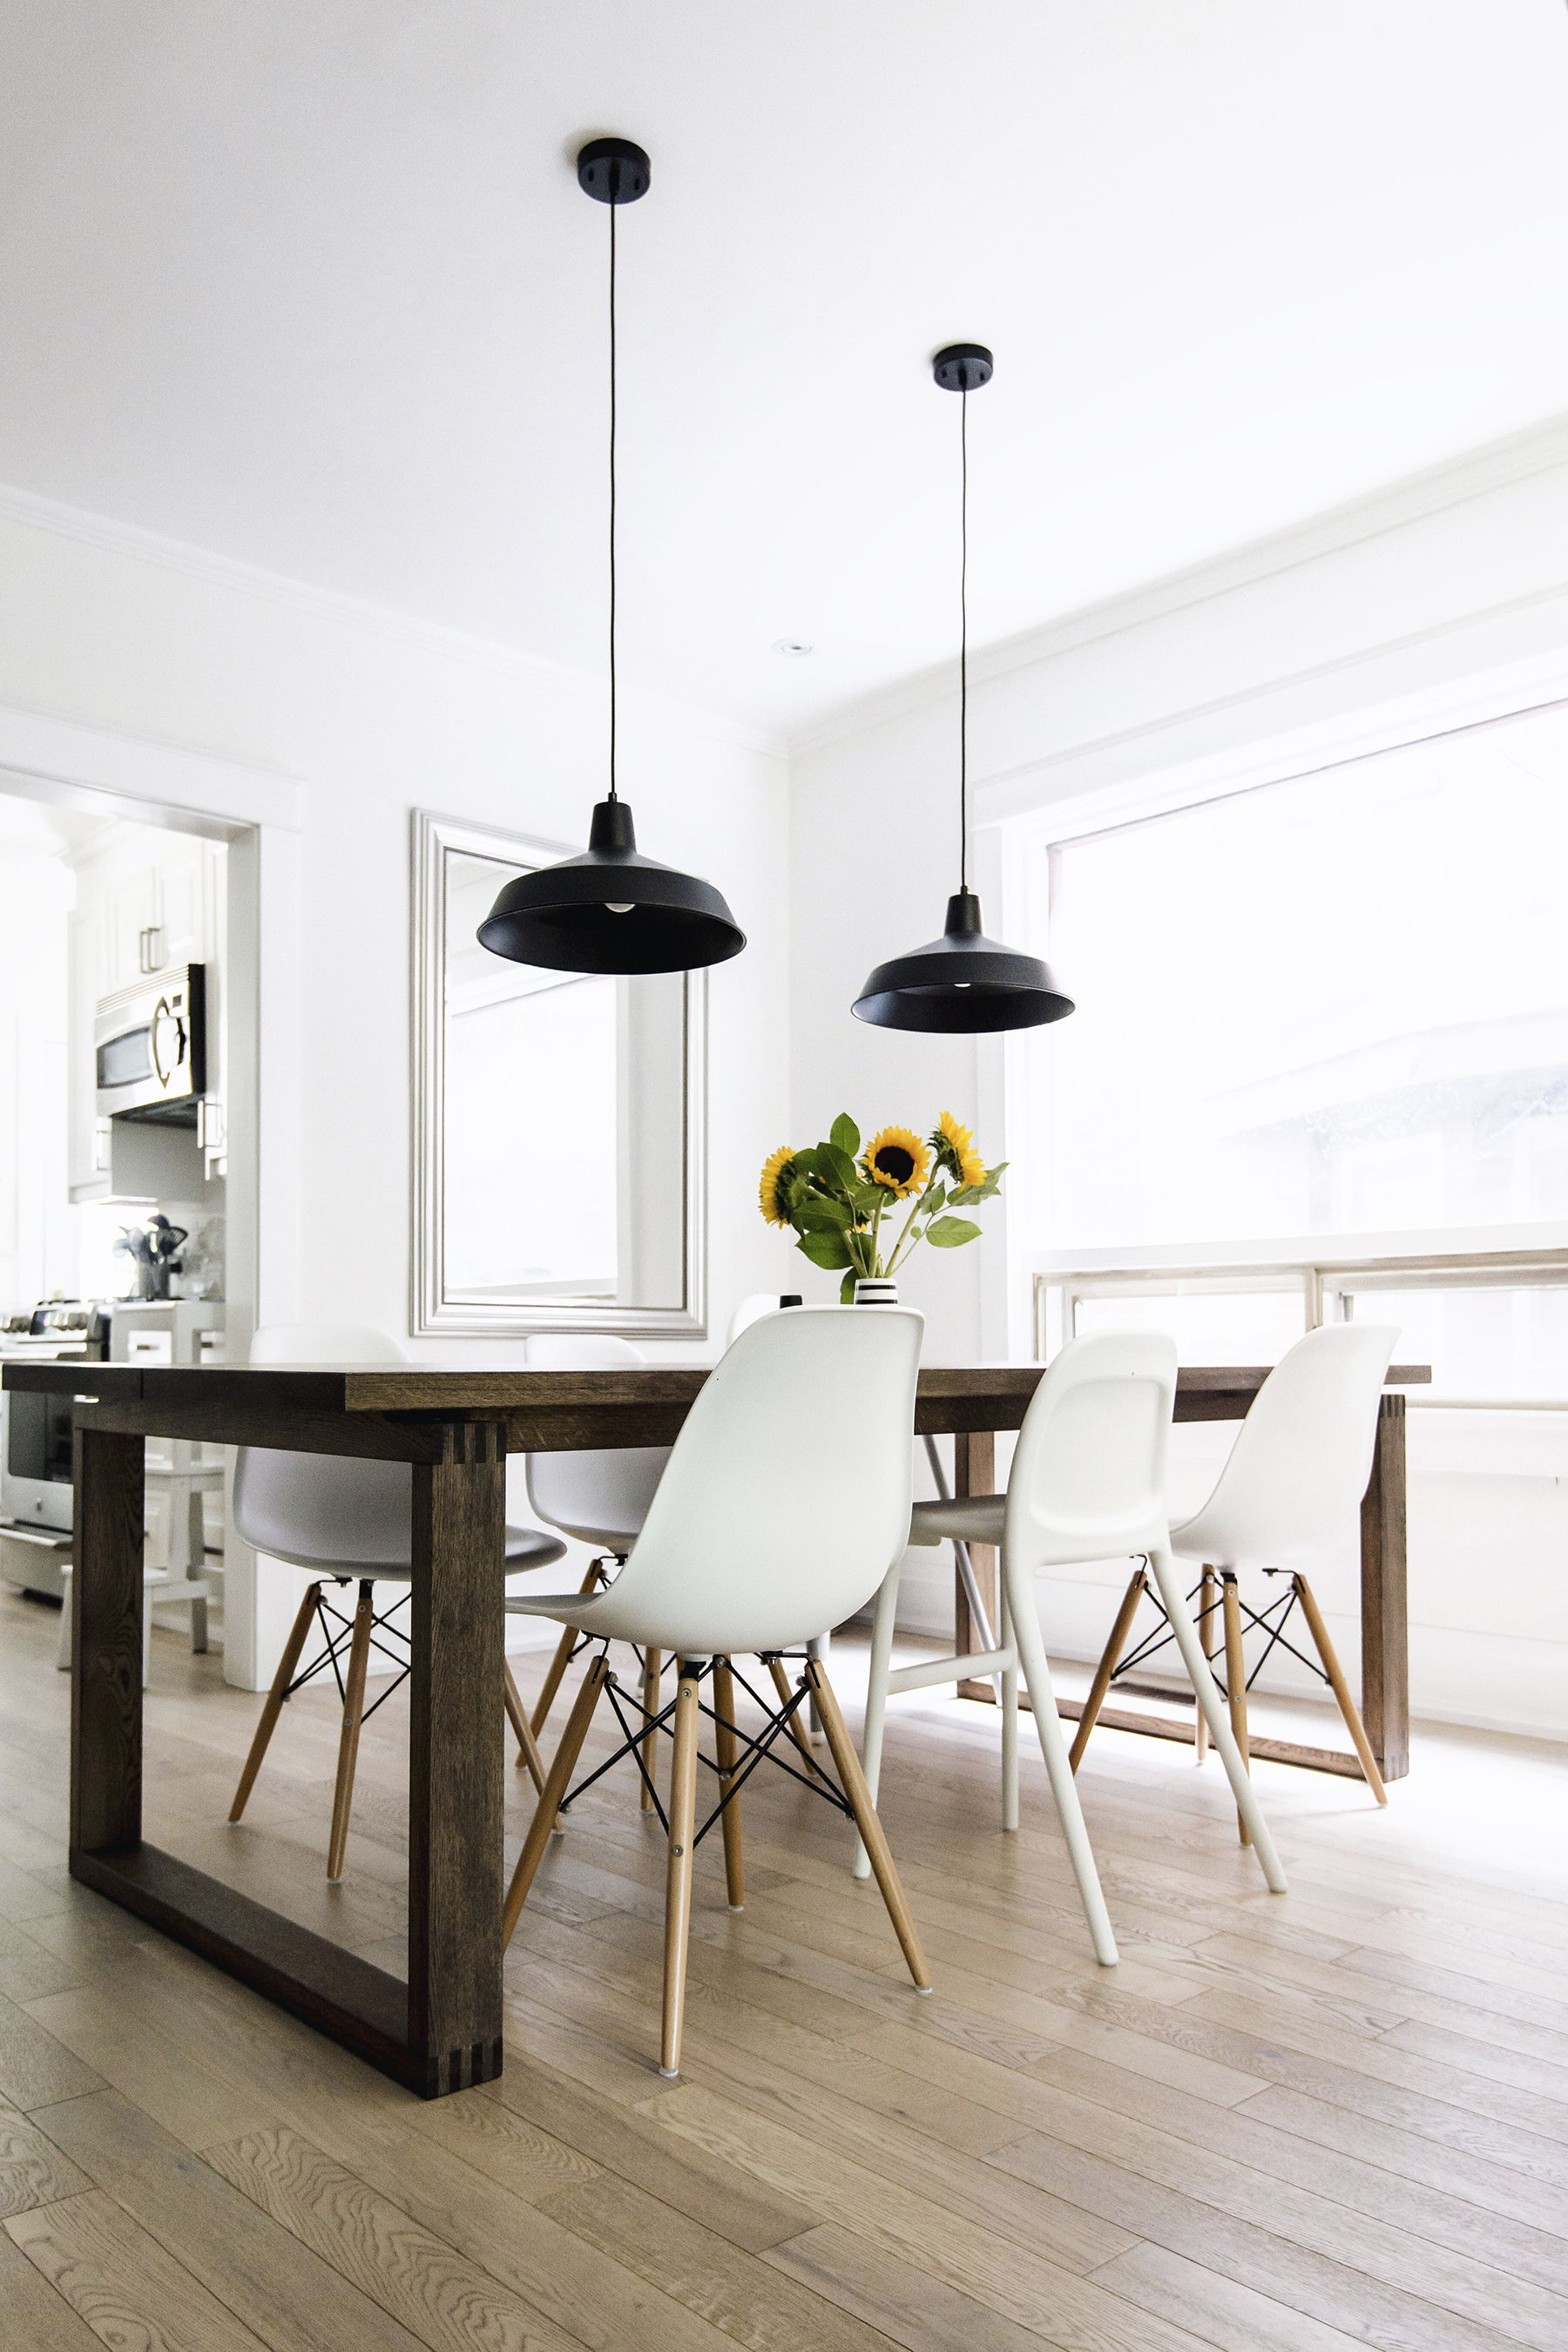 Eames Style Dining Table And Chairs Scandinavian Inspired Dining Room Mörbylånga Table